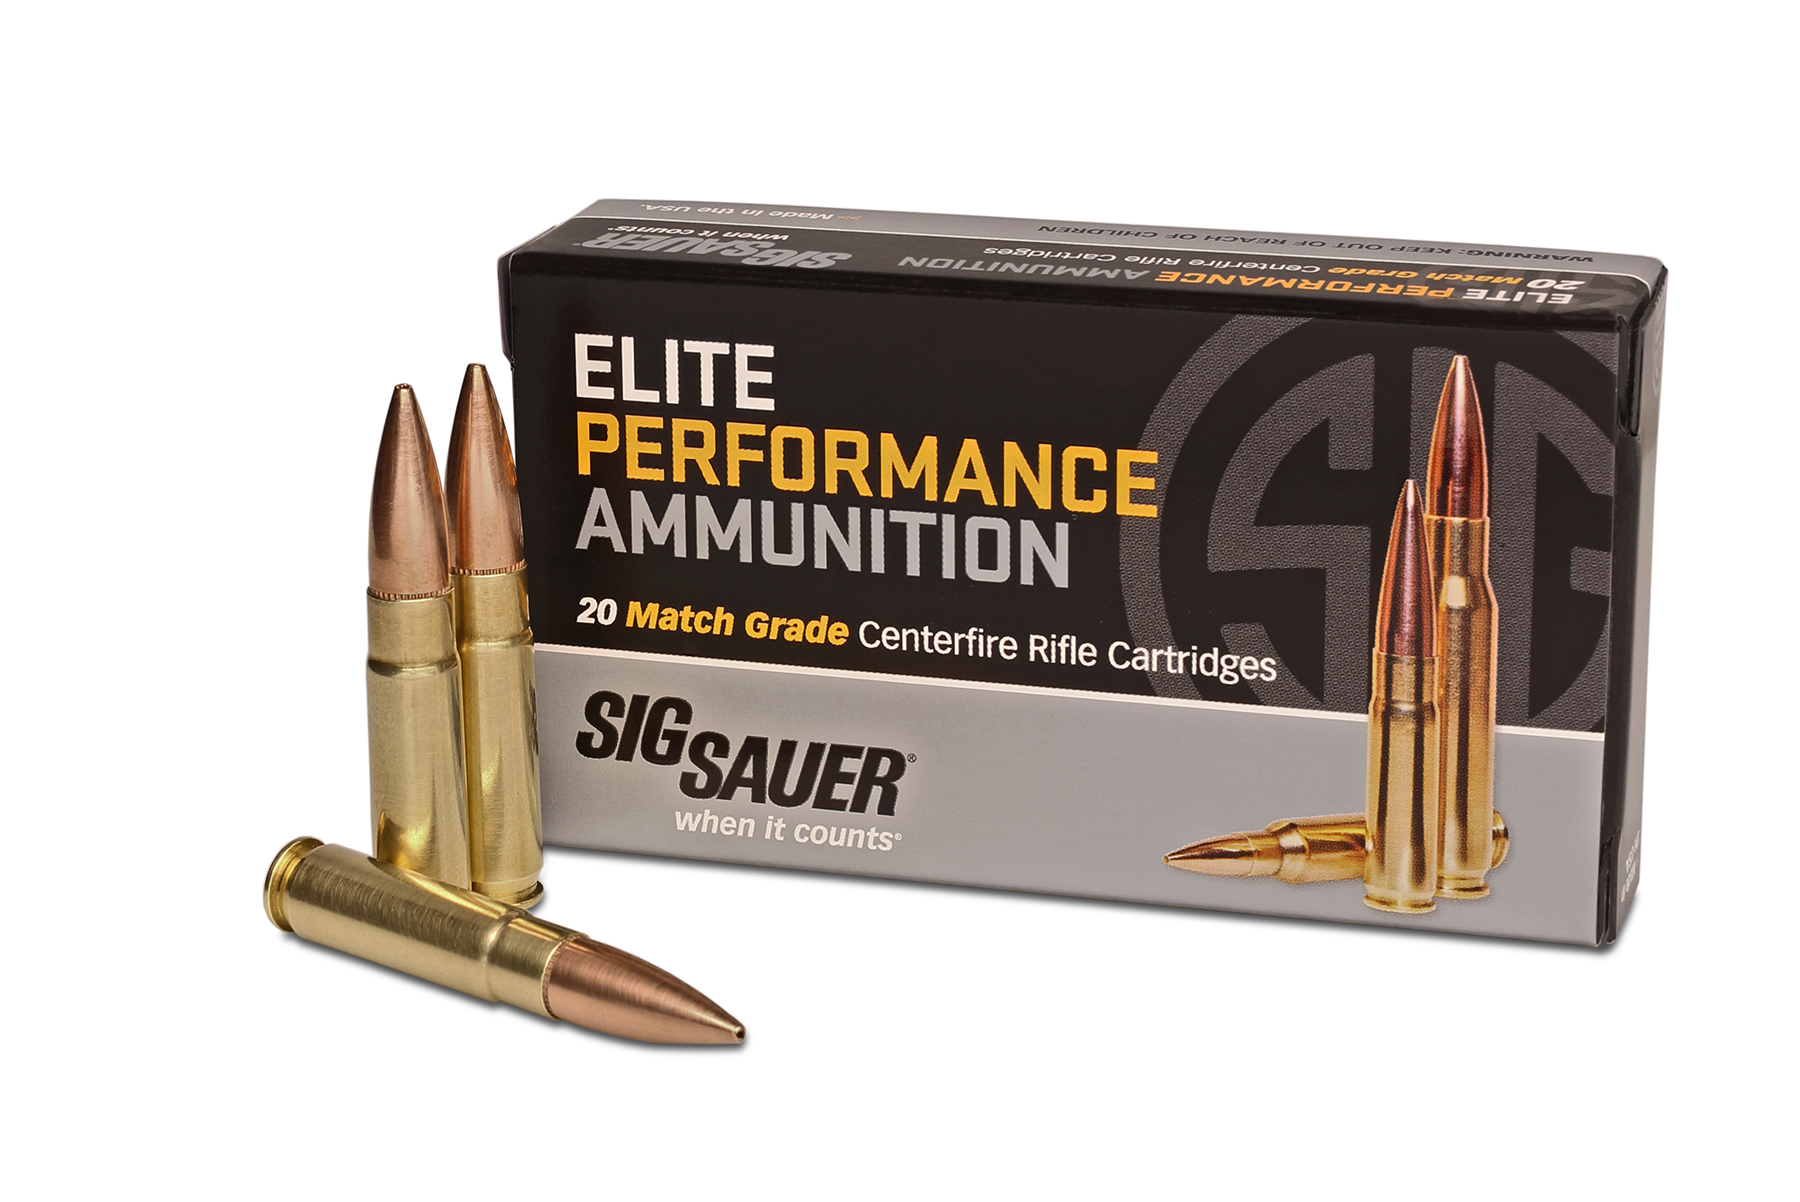 SIG SAUER 300 Blackout Elite Performance Ammunition